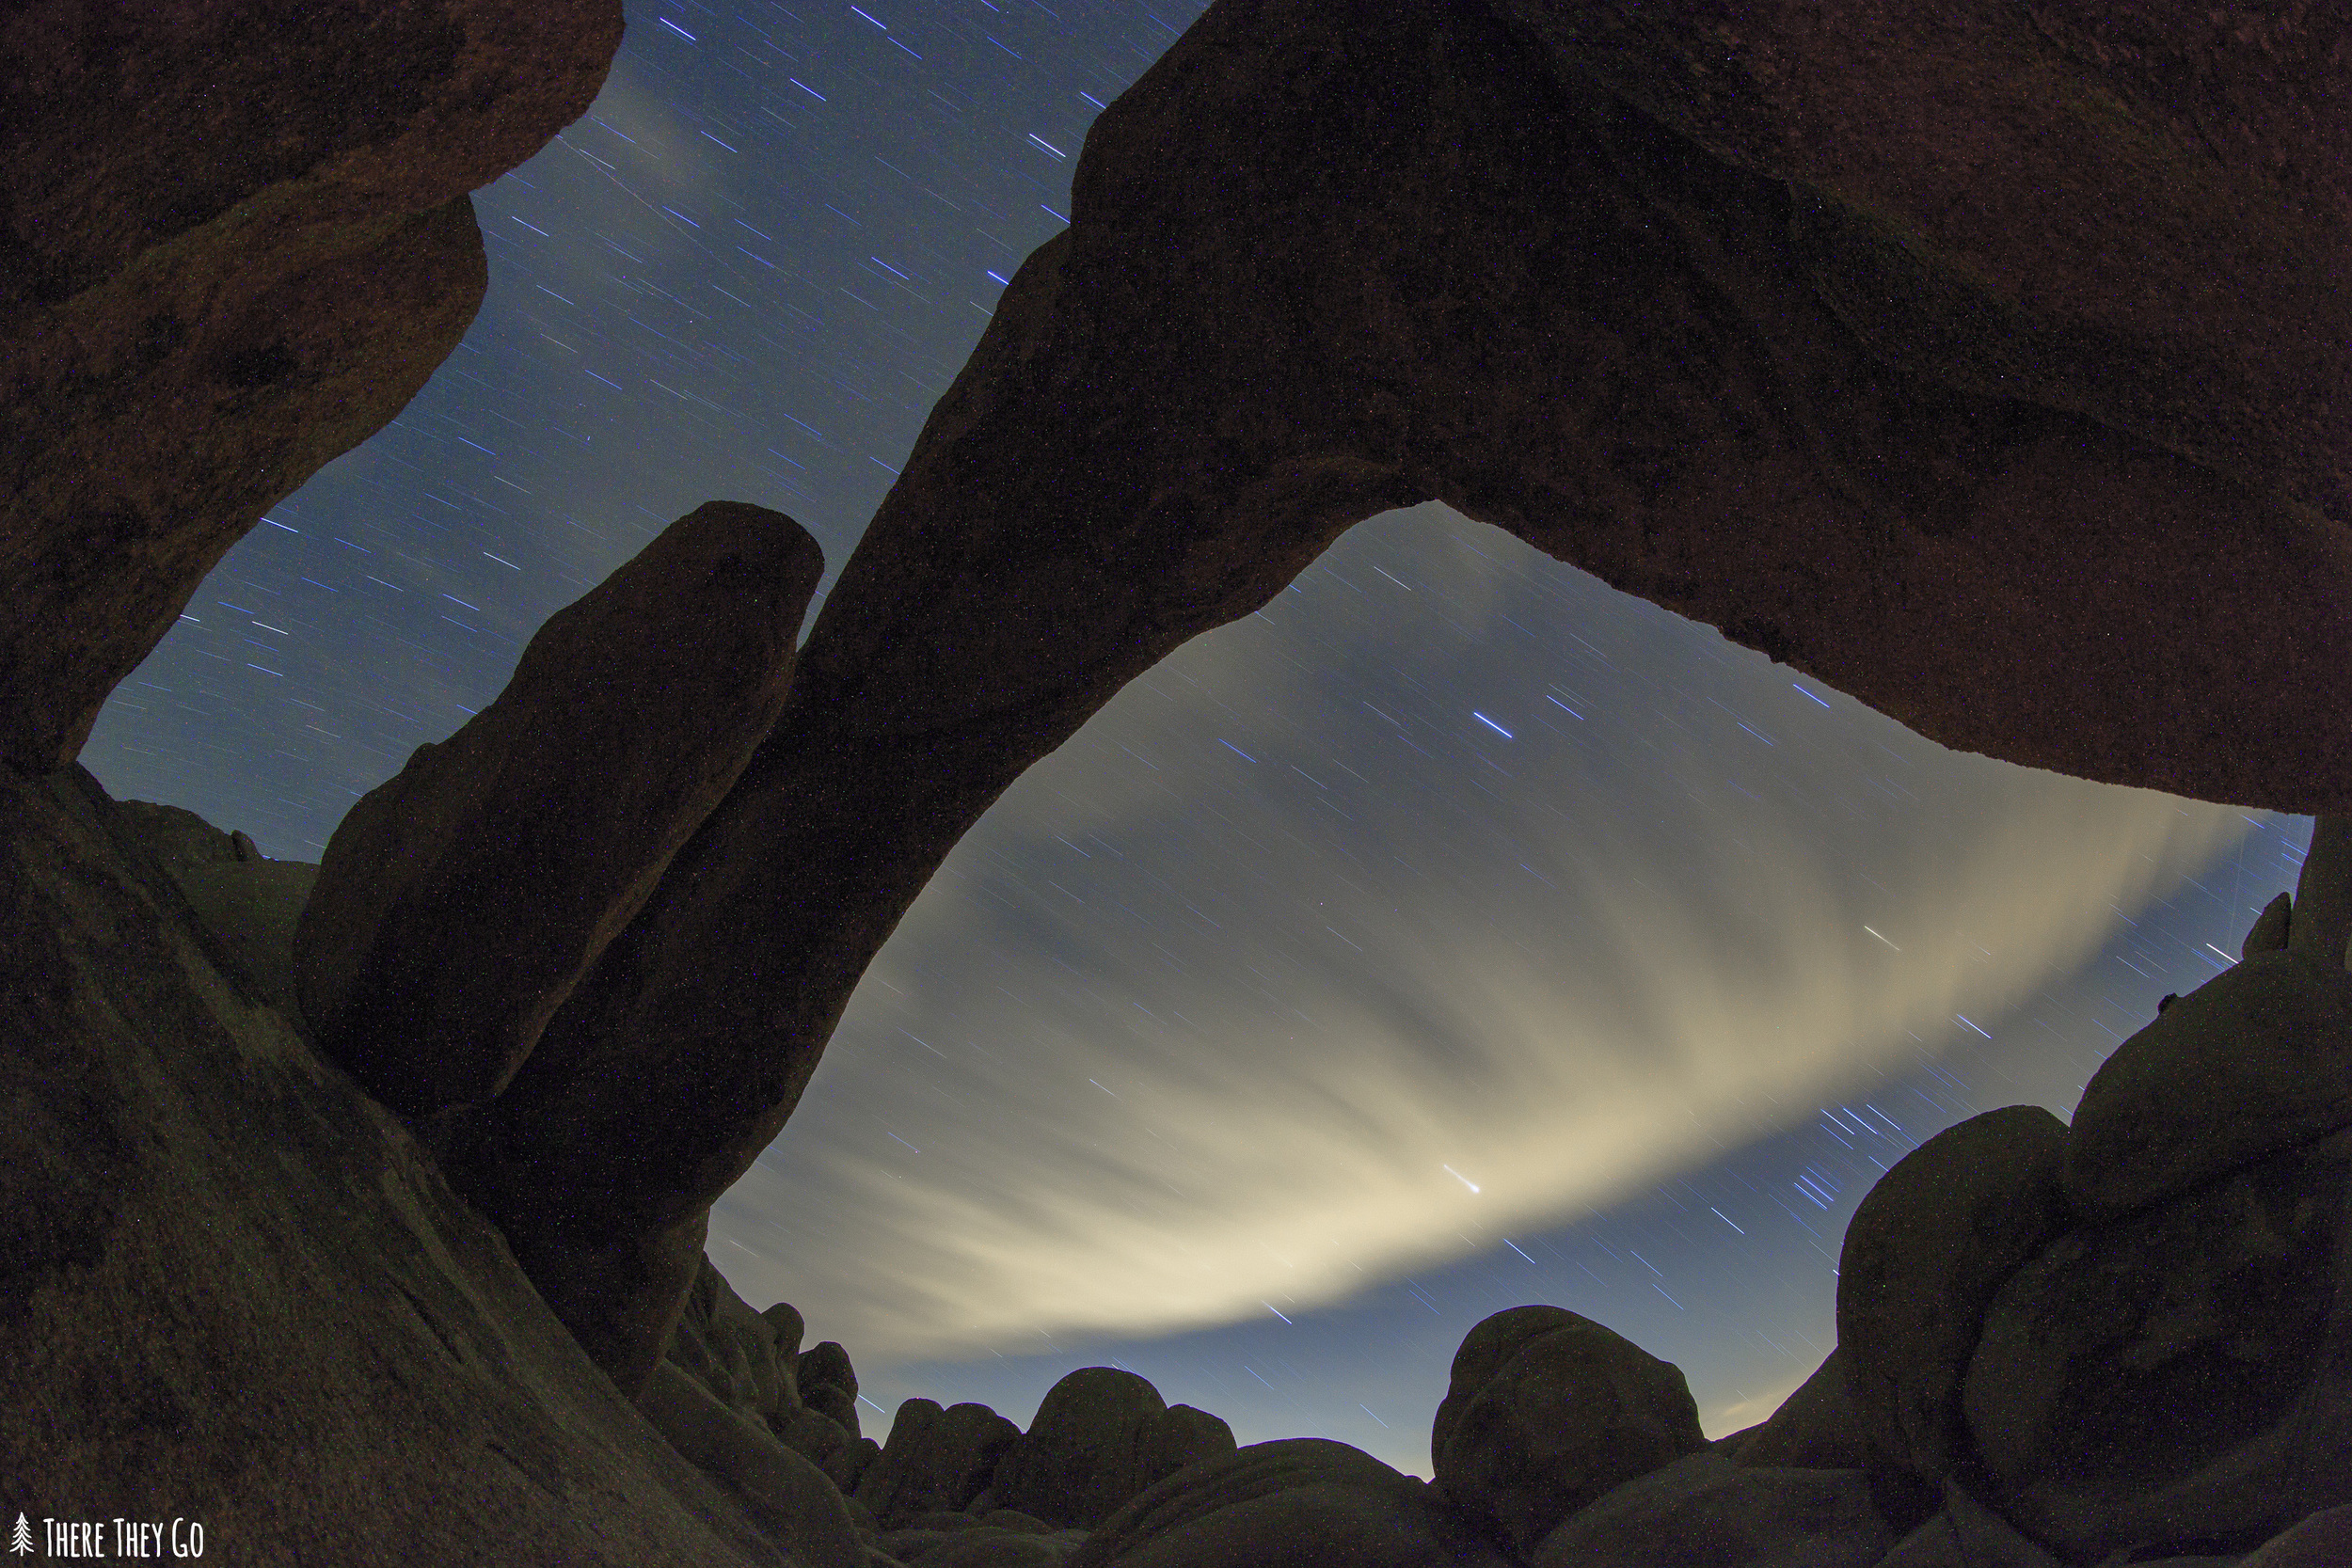 Photo Details: Camera: Canon 5d Mark III Lens: Canon 8-15mm fish eye (shot at 14mm) Exposure: 10 minutes F/8.0 ISO 1000